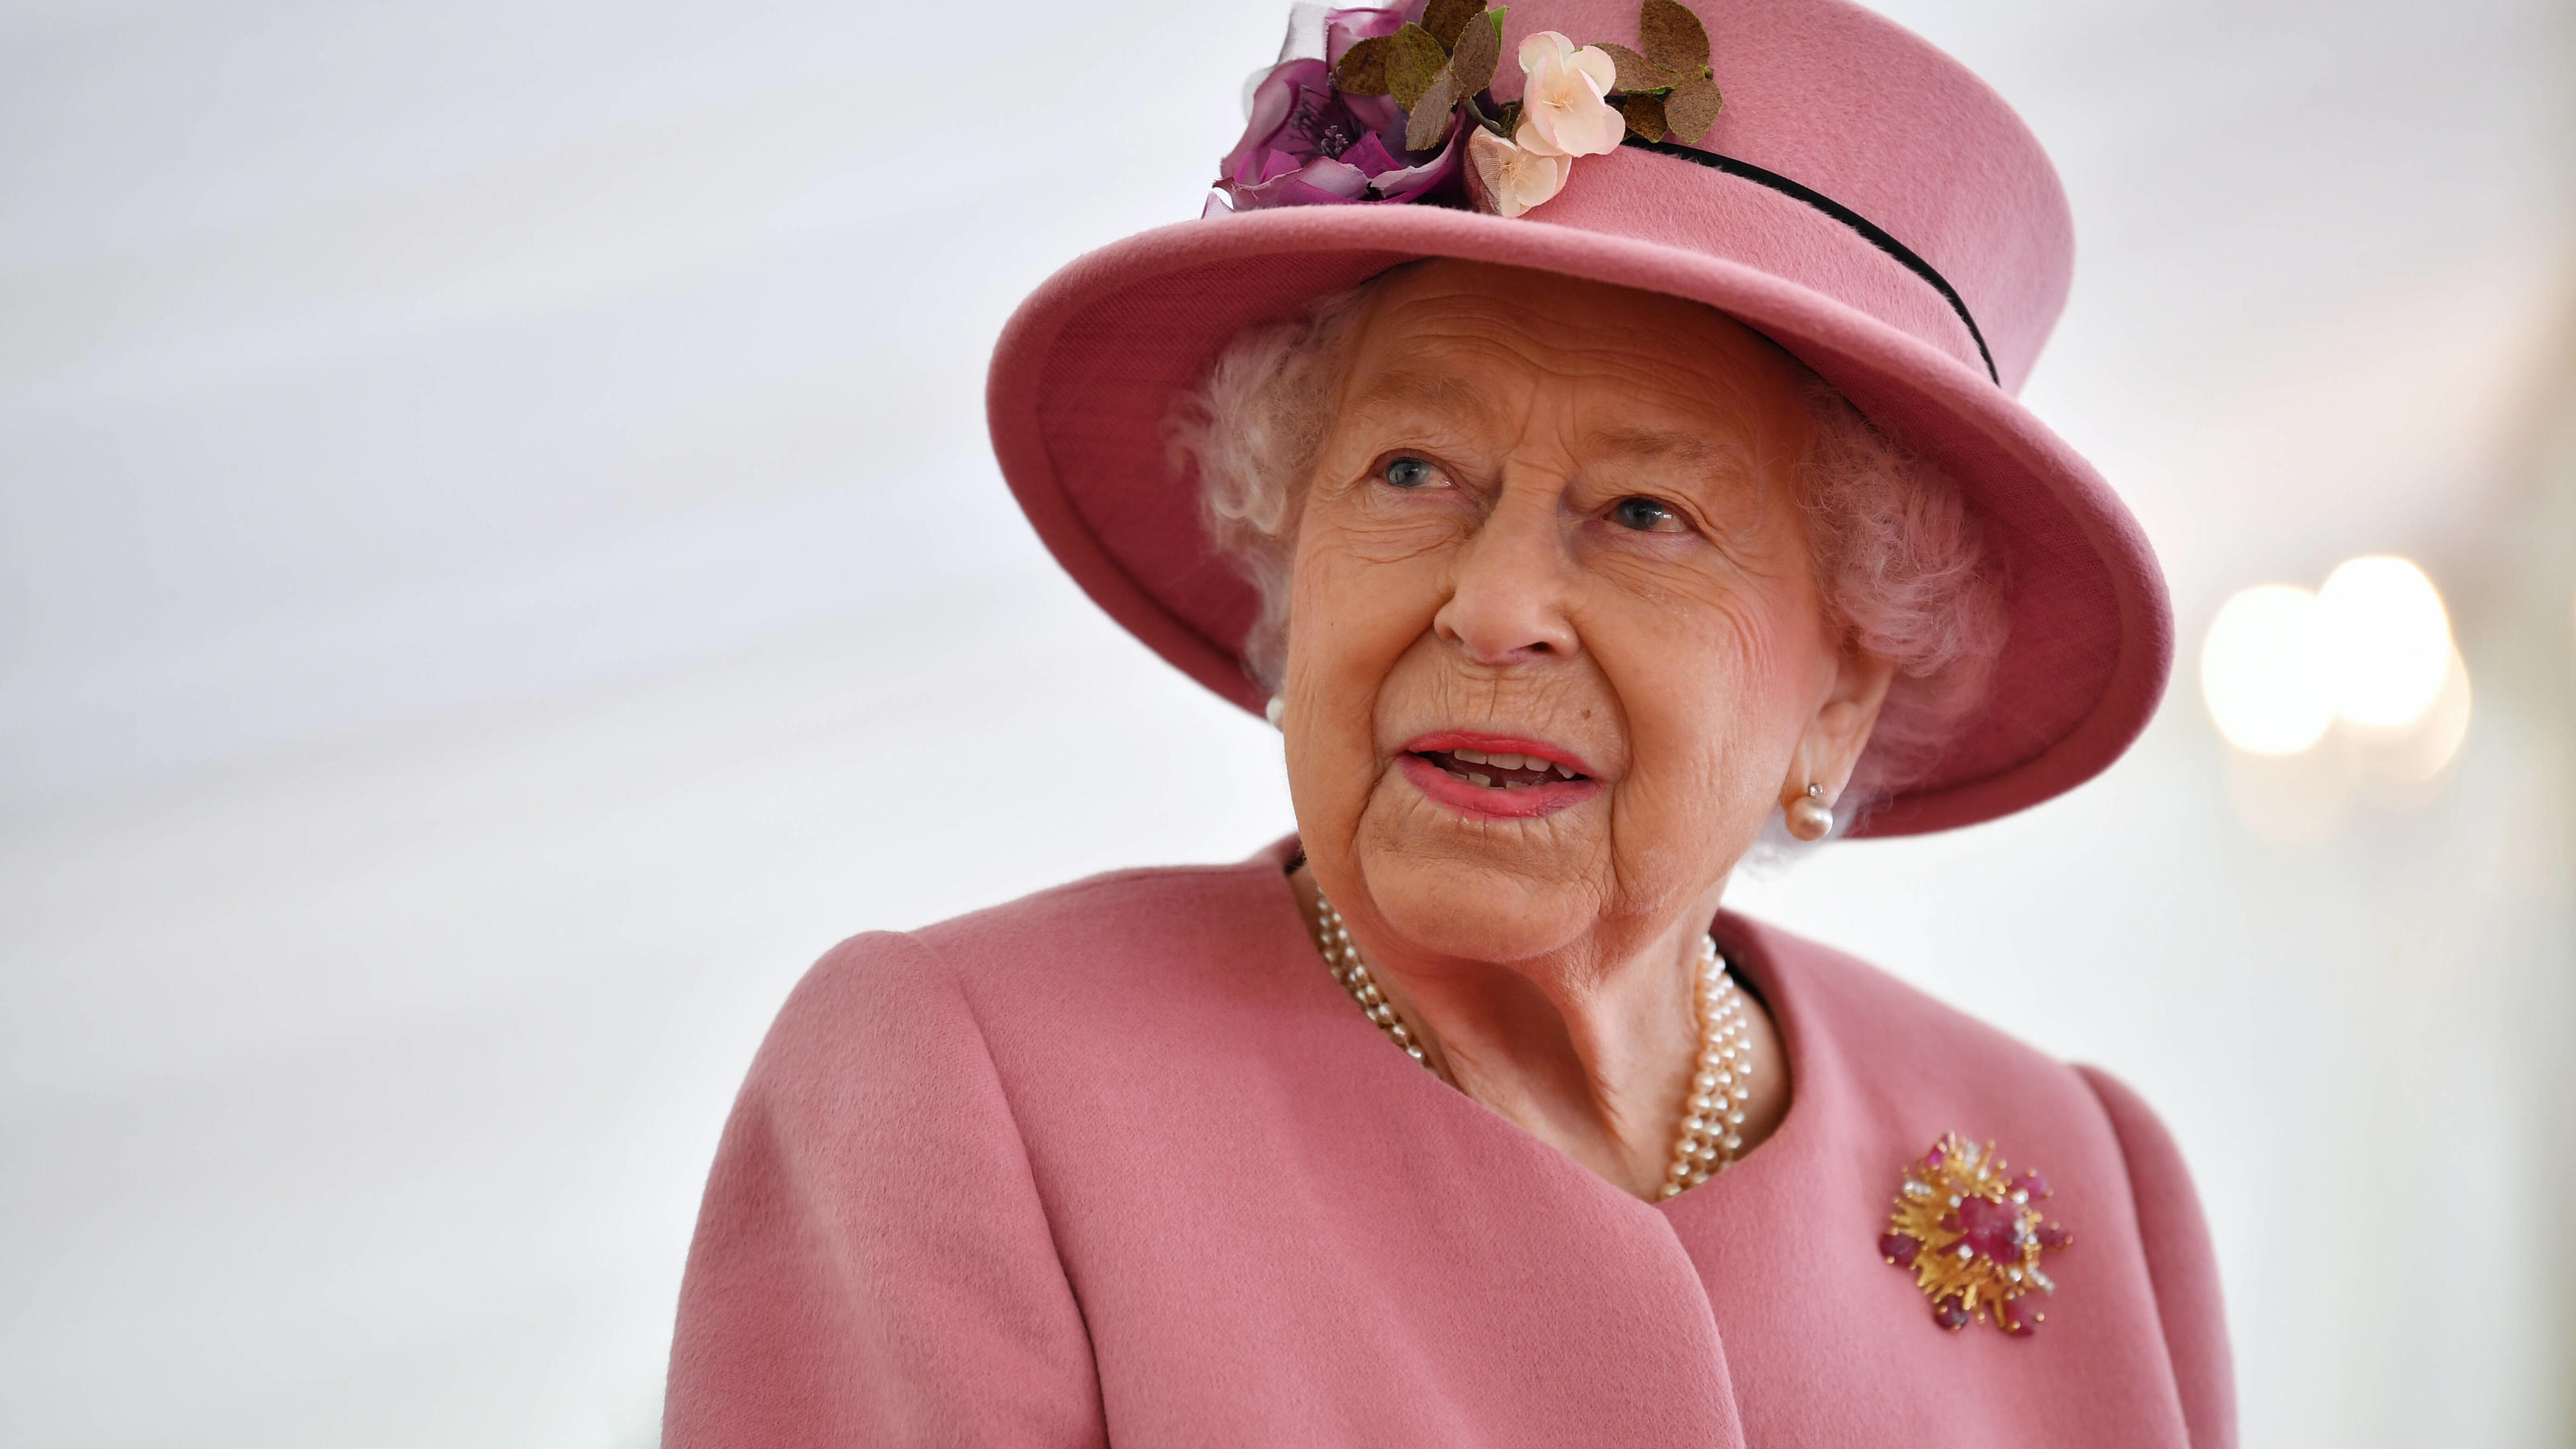 Entertainment Themen der Woche KW42 Entertainment Bilder des Tages . 15/10/2020. Salisbury, United Kingdom. Queen Elizabeth II during a visit to the Defence Science and Technology Laboratory in Porton Down, near Salisbury,United Kingdom. PUBLICATIONx